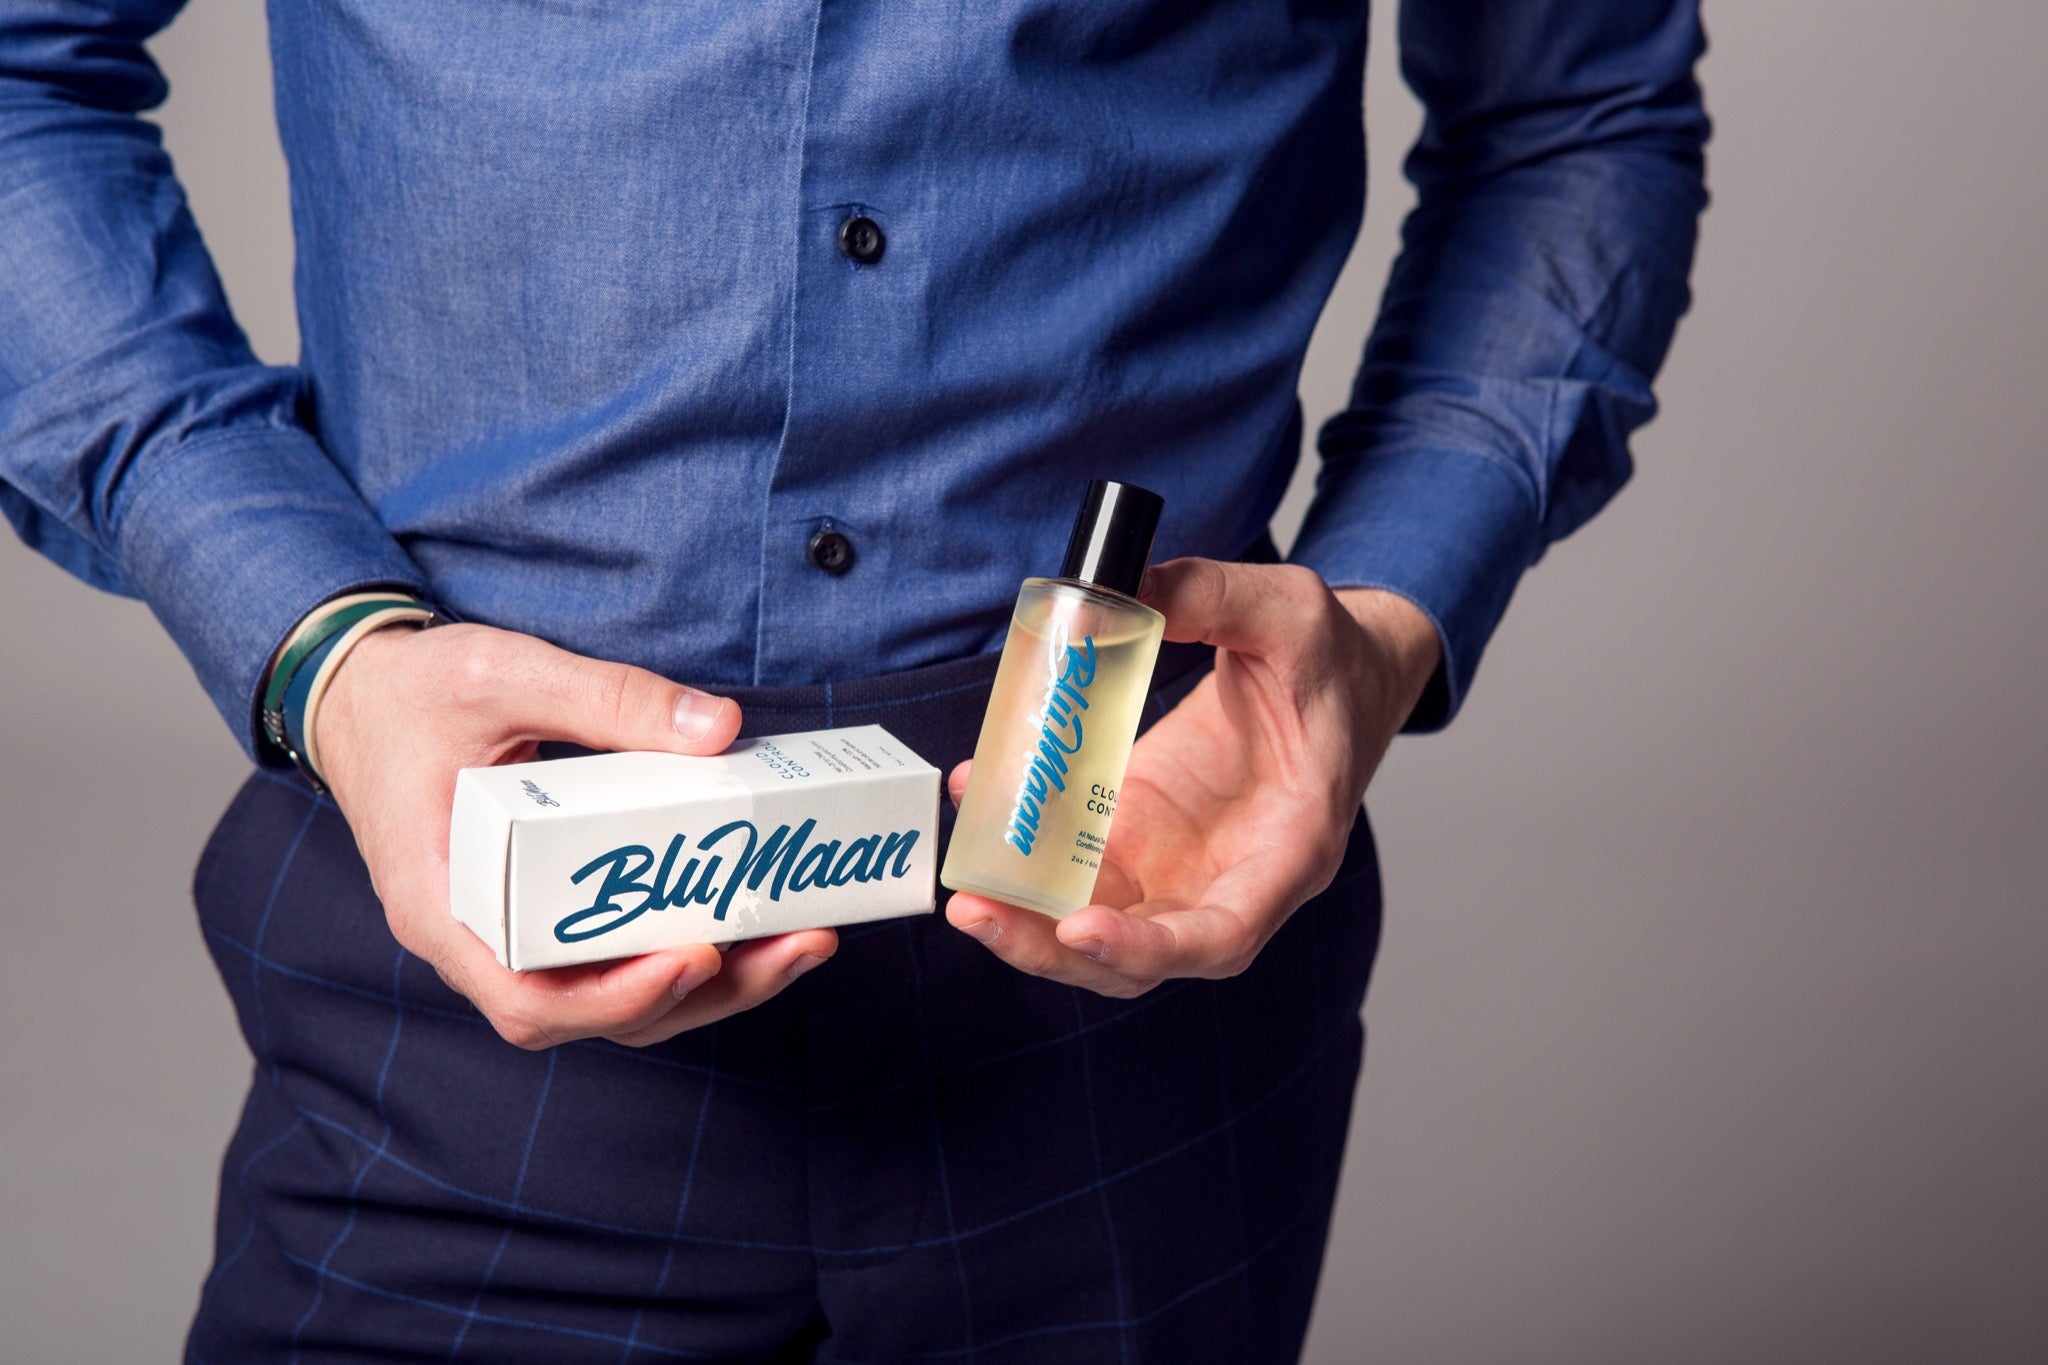 A model holds two products by BluMaan.